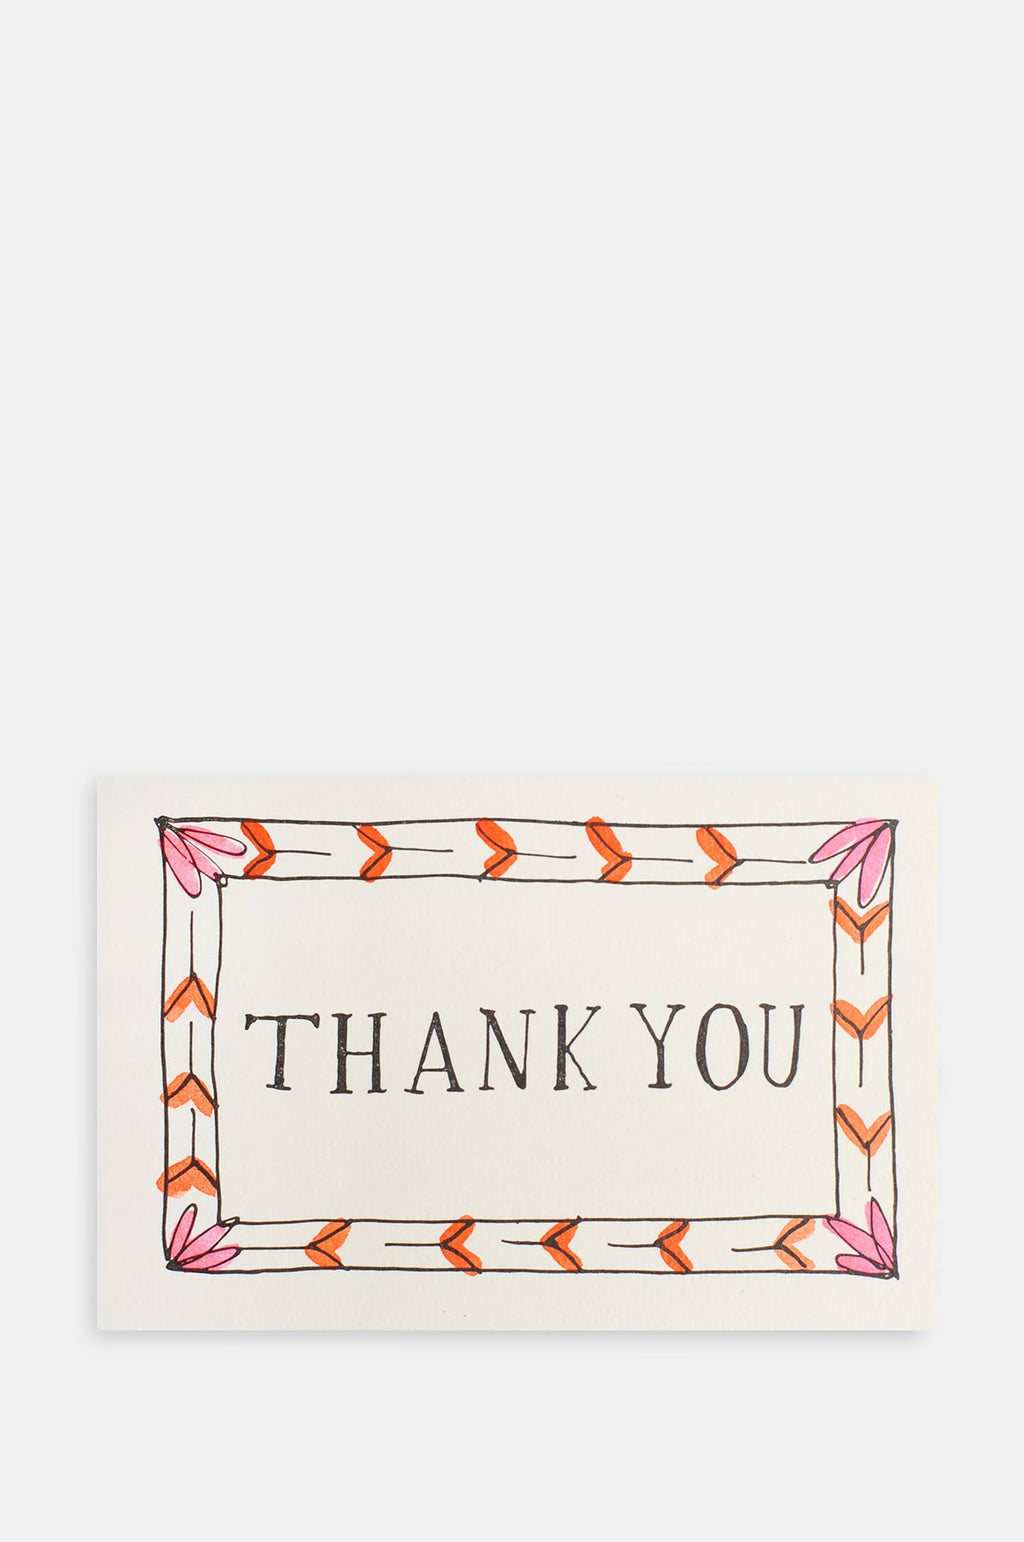 Thank You Border Card in Pink and Orange